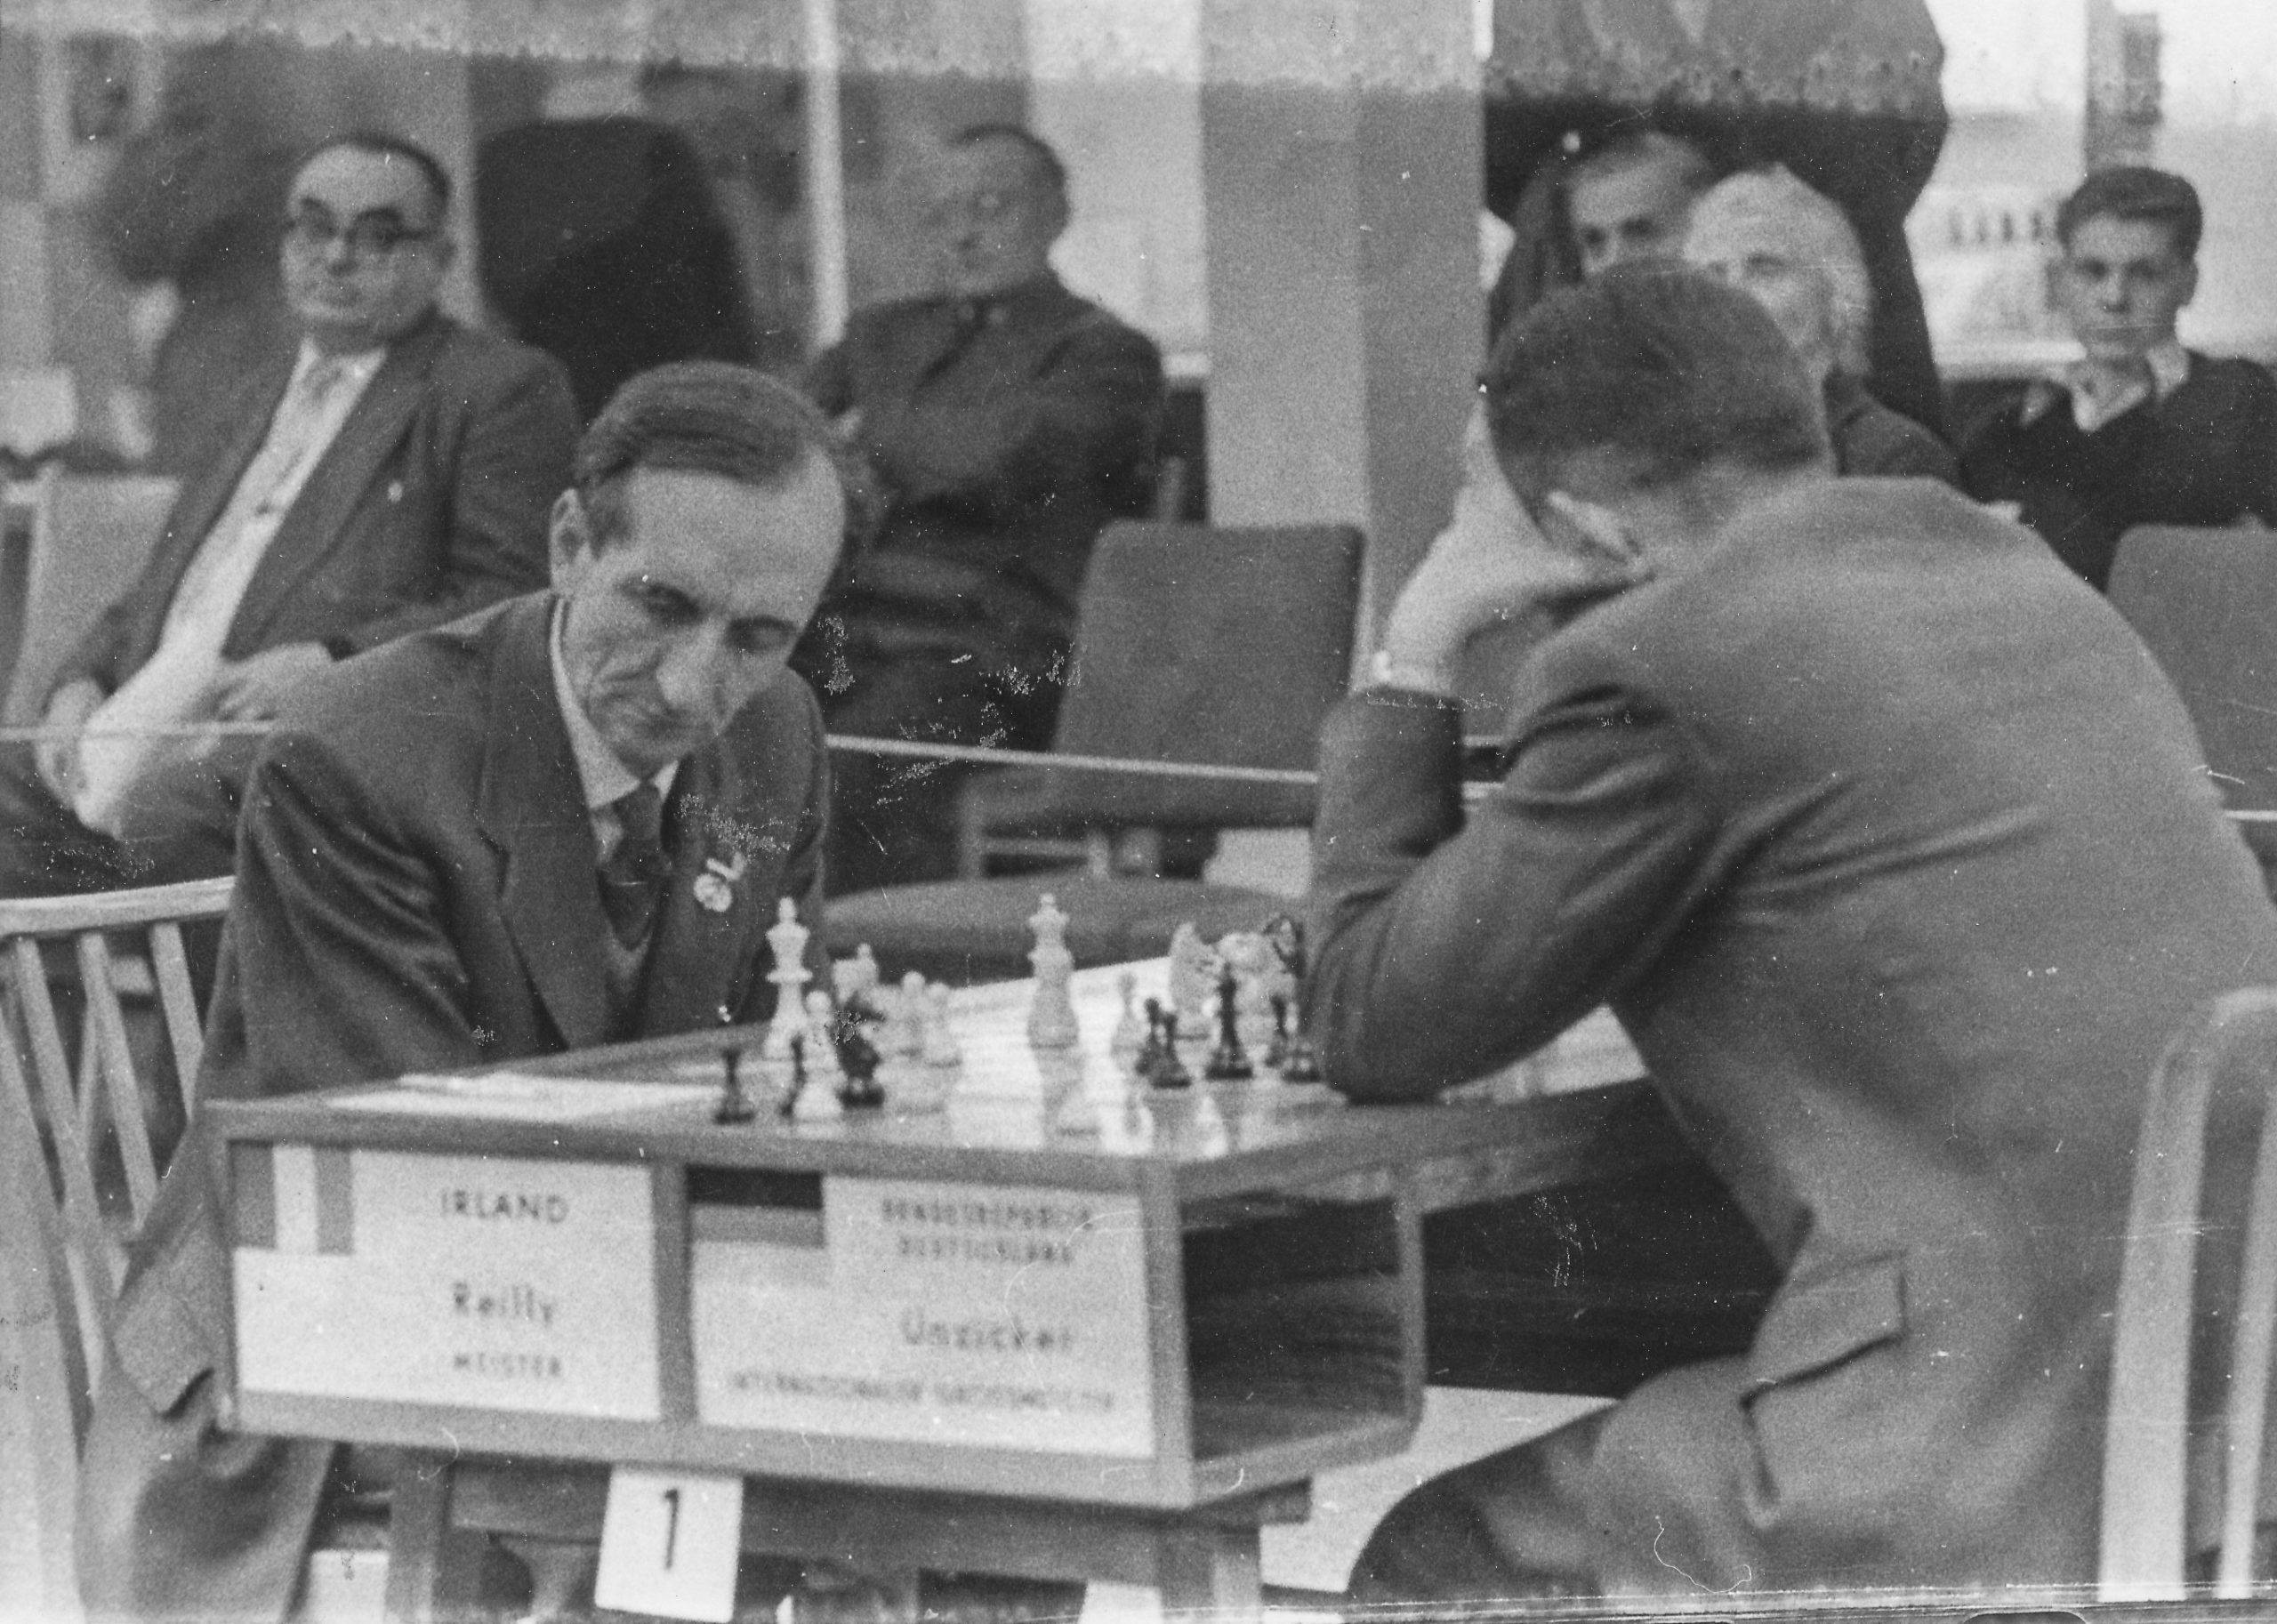 Brian Reilly playing Wolfgang Unzicker on board 1 during the preliminaries of the 1960 Leipzig Olympiad.